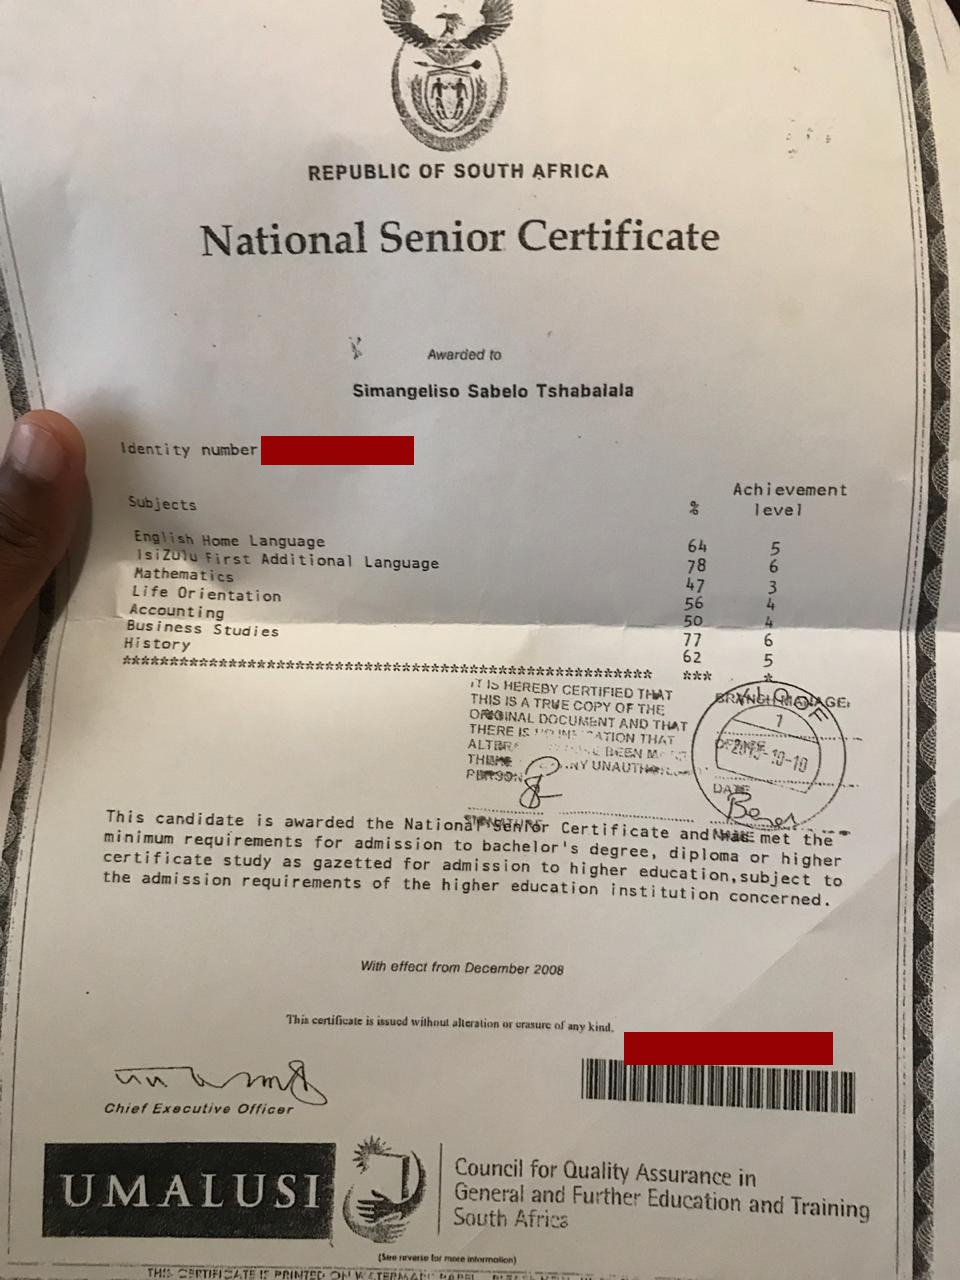 sky tshabalala's matric results